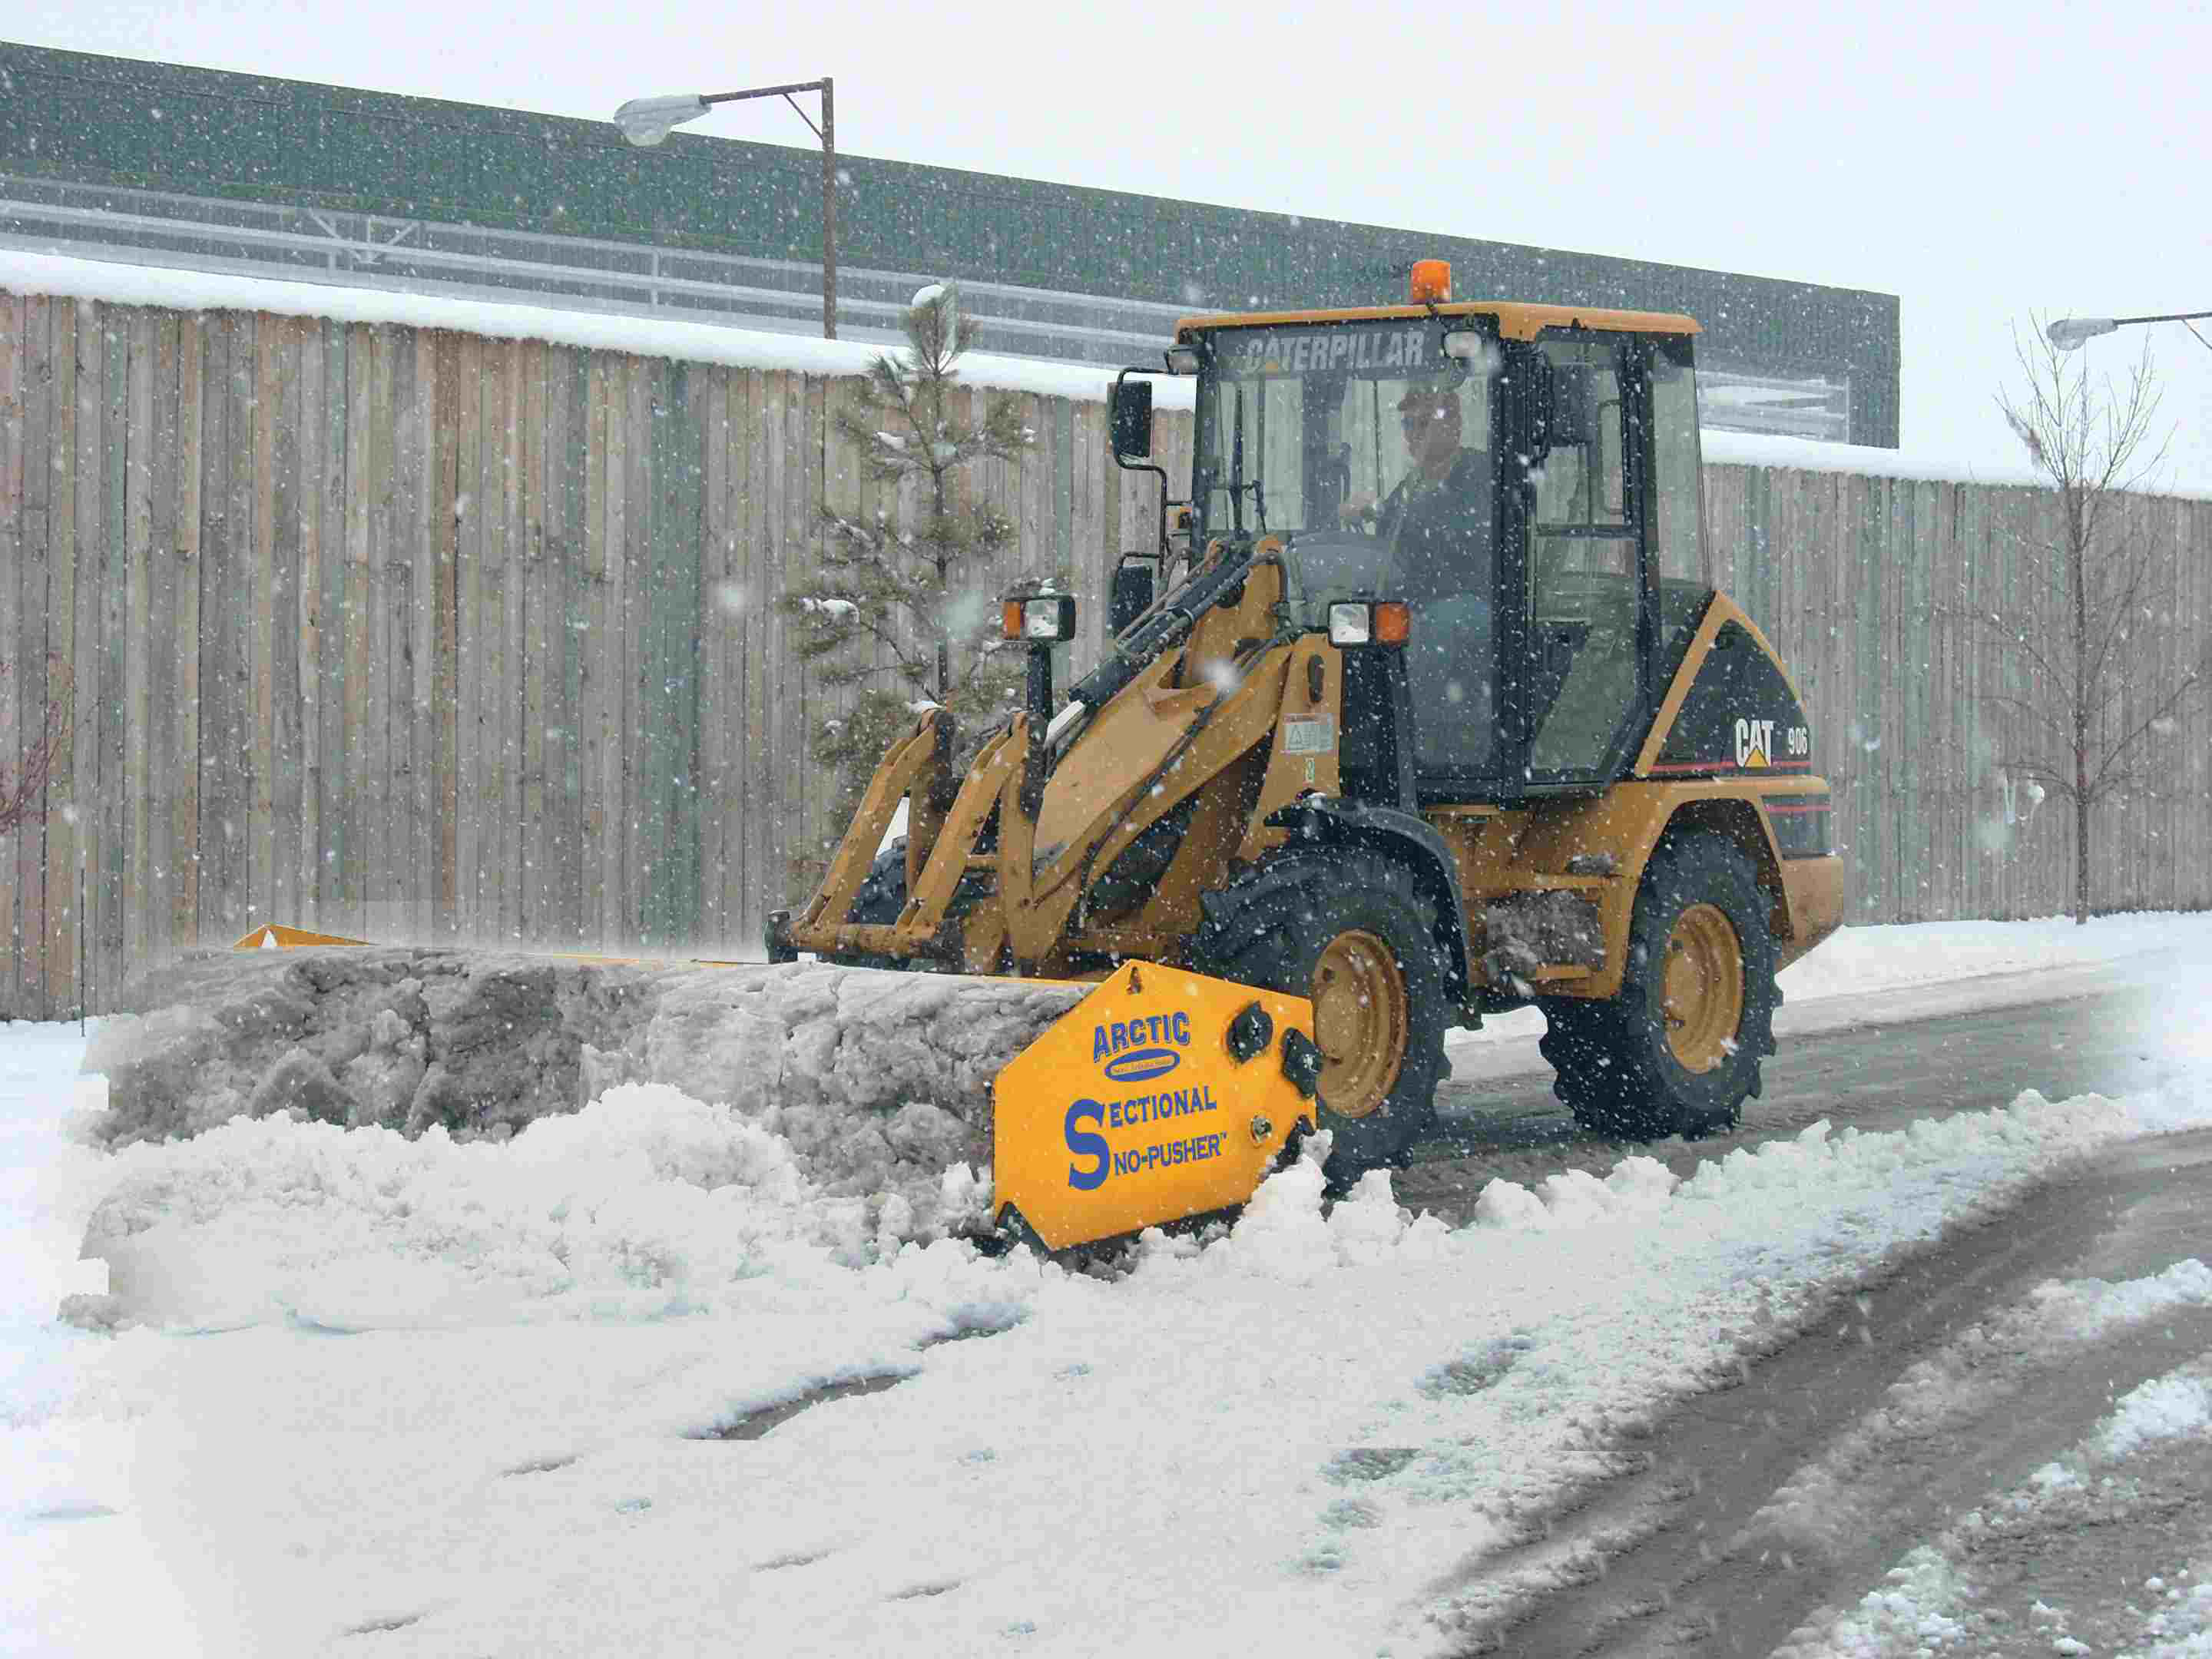 What is the best option for skid steer moving snow